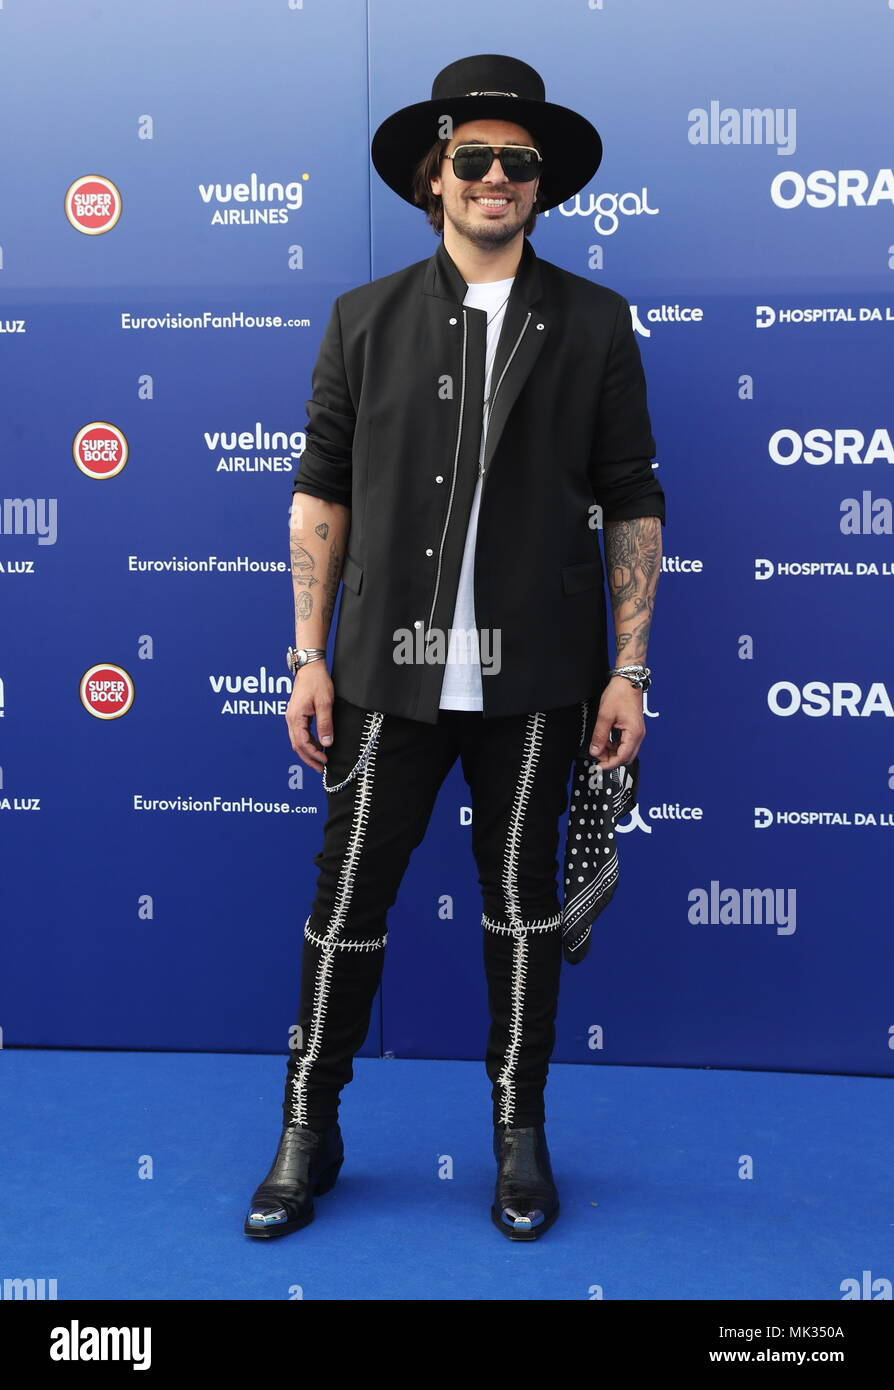 lisbon-portugal-06th-may-2018-lisbon-portugal-may-6-2018-singer-waylon-representing-the-netherlands-at-the-opening-ceremony-blue-carpet-event-of-the-2018-eurovision-song-contest-at-the-museum-of-art-architecture-and-technology-maat-vyacheslav-prokofyevtass-credit-itar-tass-news-agencyalamy-live-news-MK350A.jpg